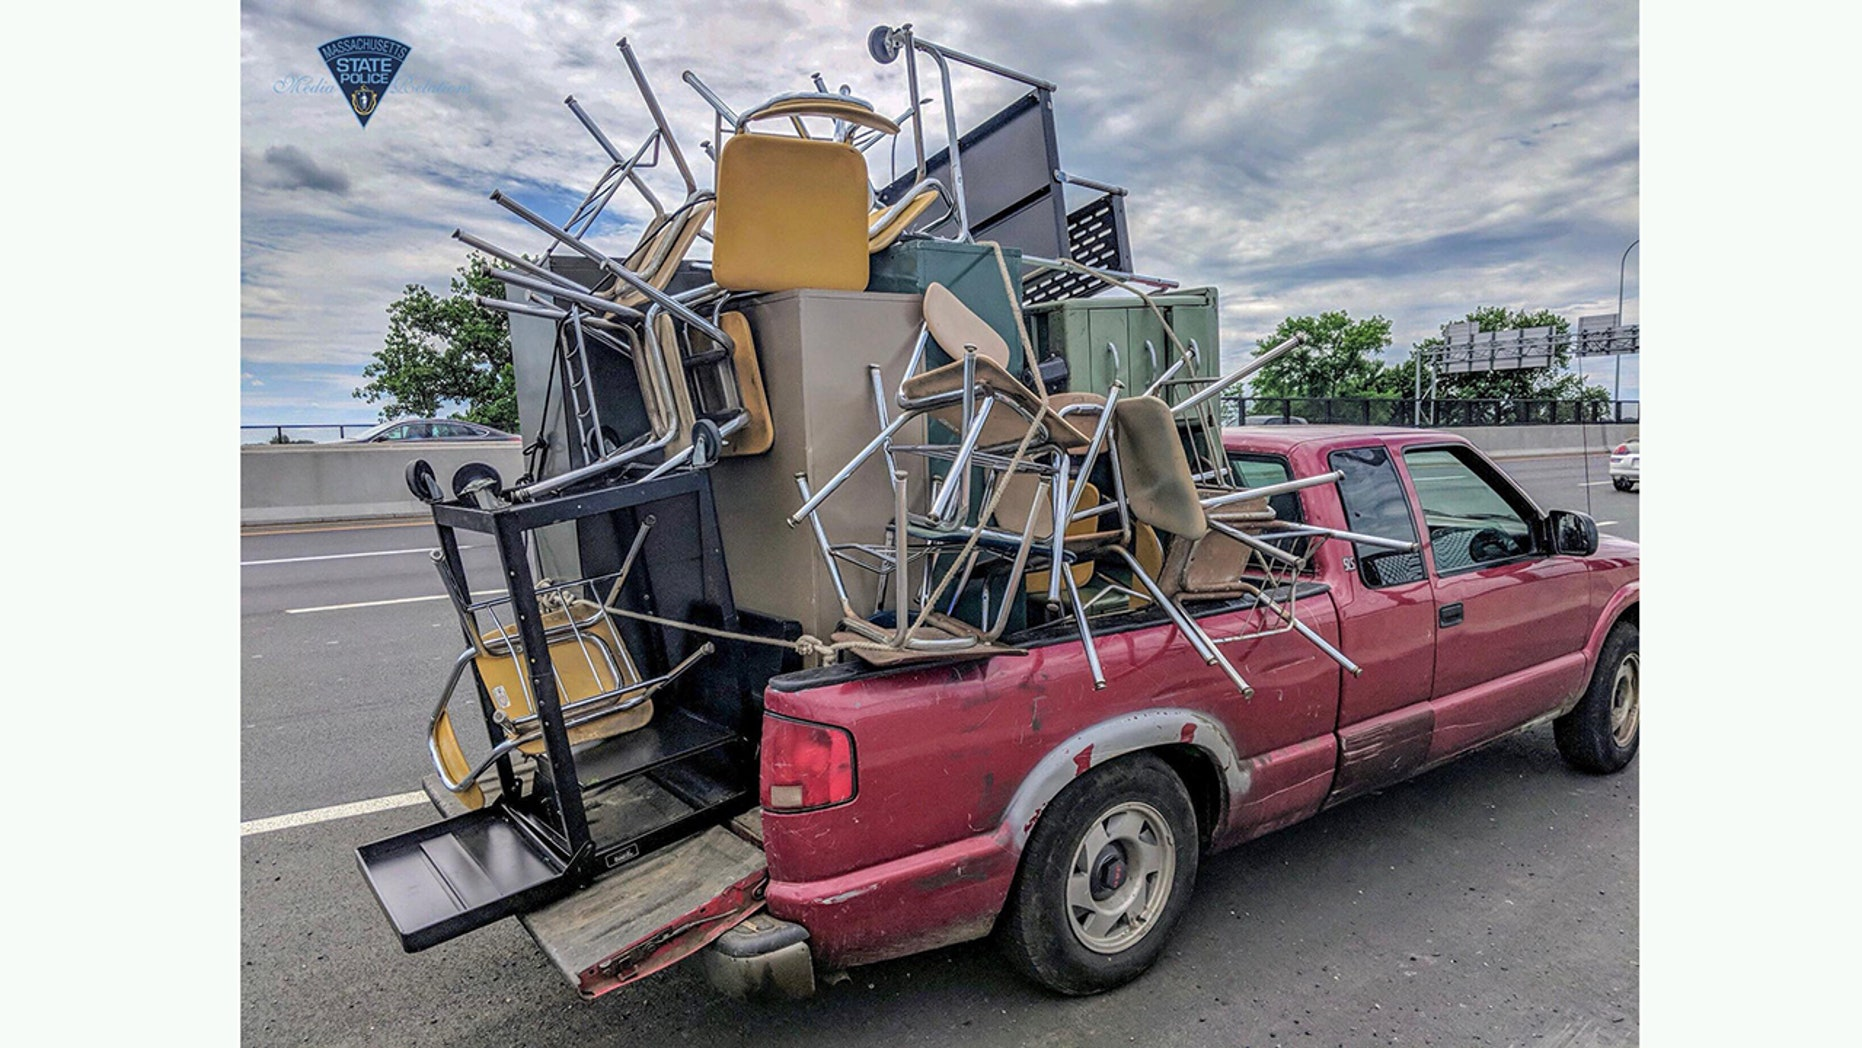 Overloaded Pickup Full Of Furniture Has Police Asking What Could Go